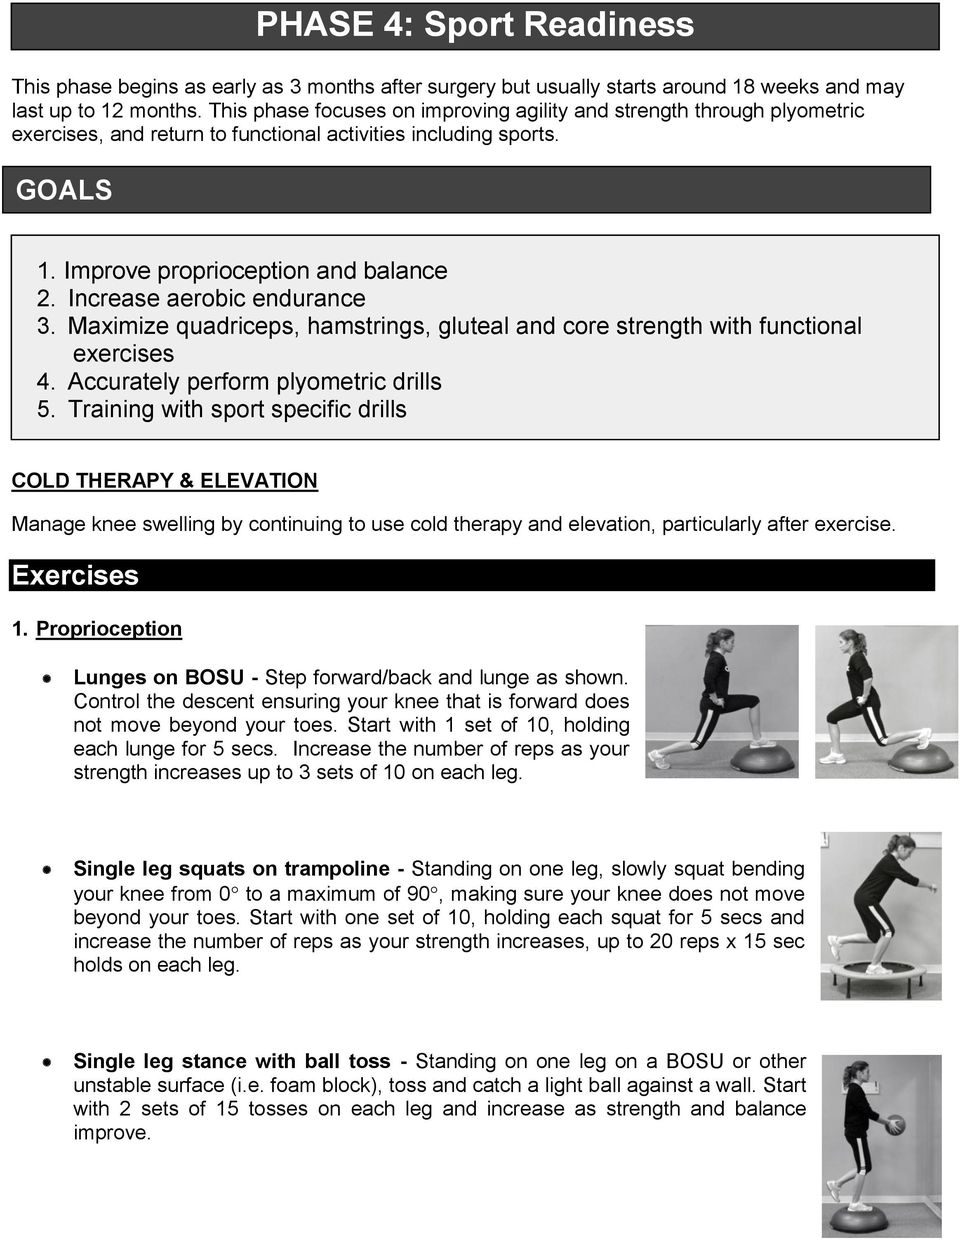 Improve proprioception and balance 2. Increase aerobic endurance 3. Maximize quadriceps, hamstrings, gluteal and core strength with functional exercises 4. Accurately perform plyometric drills 5.